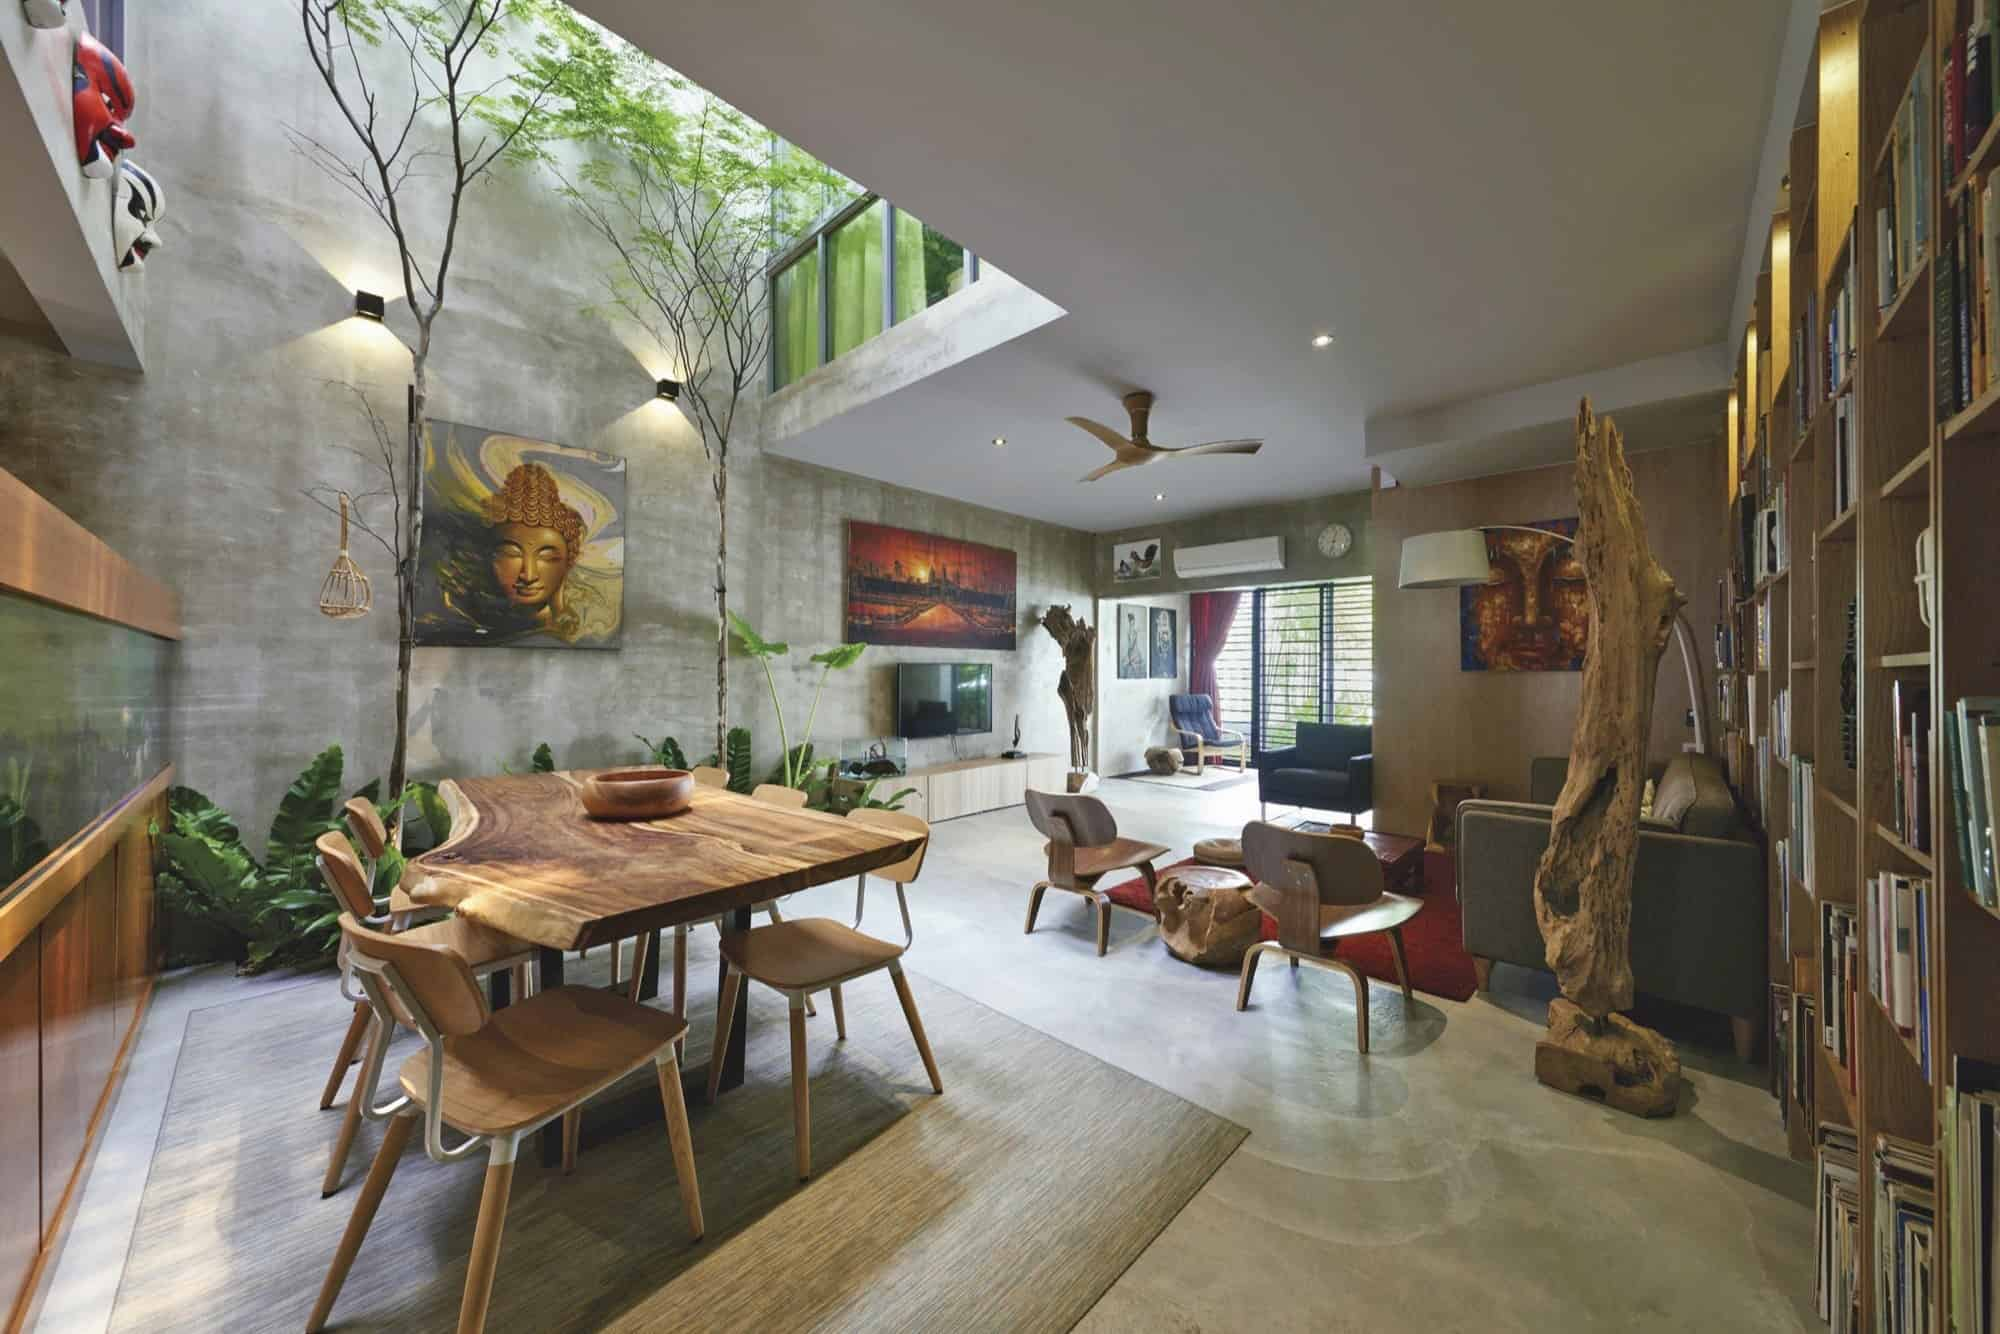 Trees and shrubs create faux courtyard inside house What is an atrium in a house